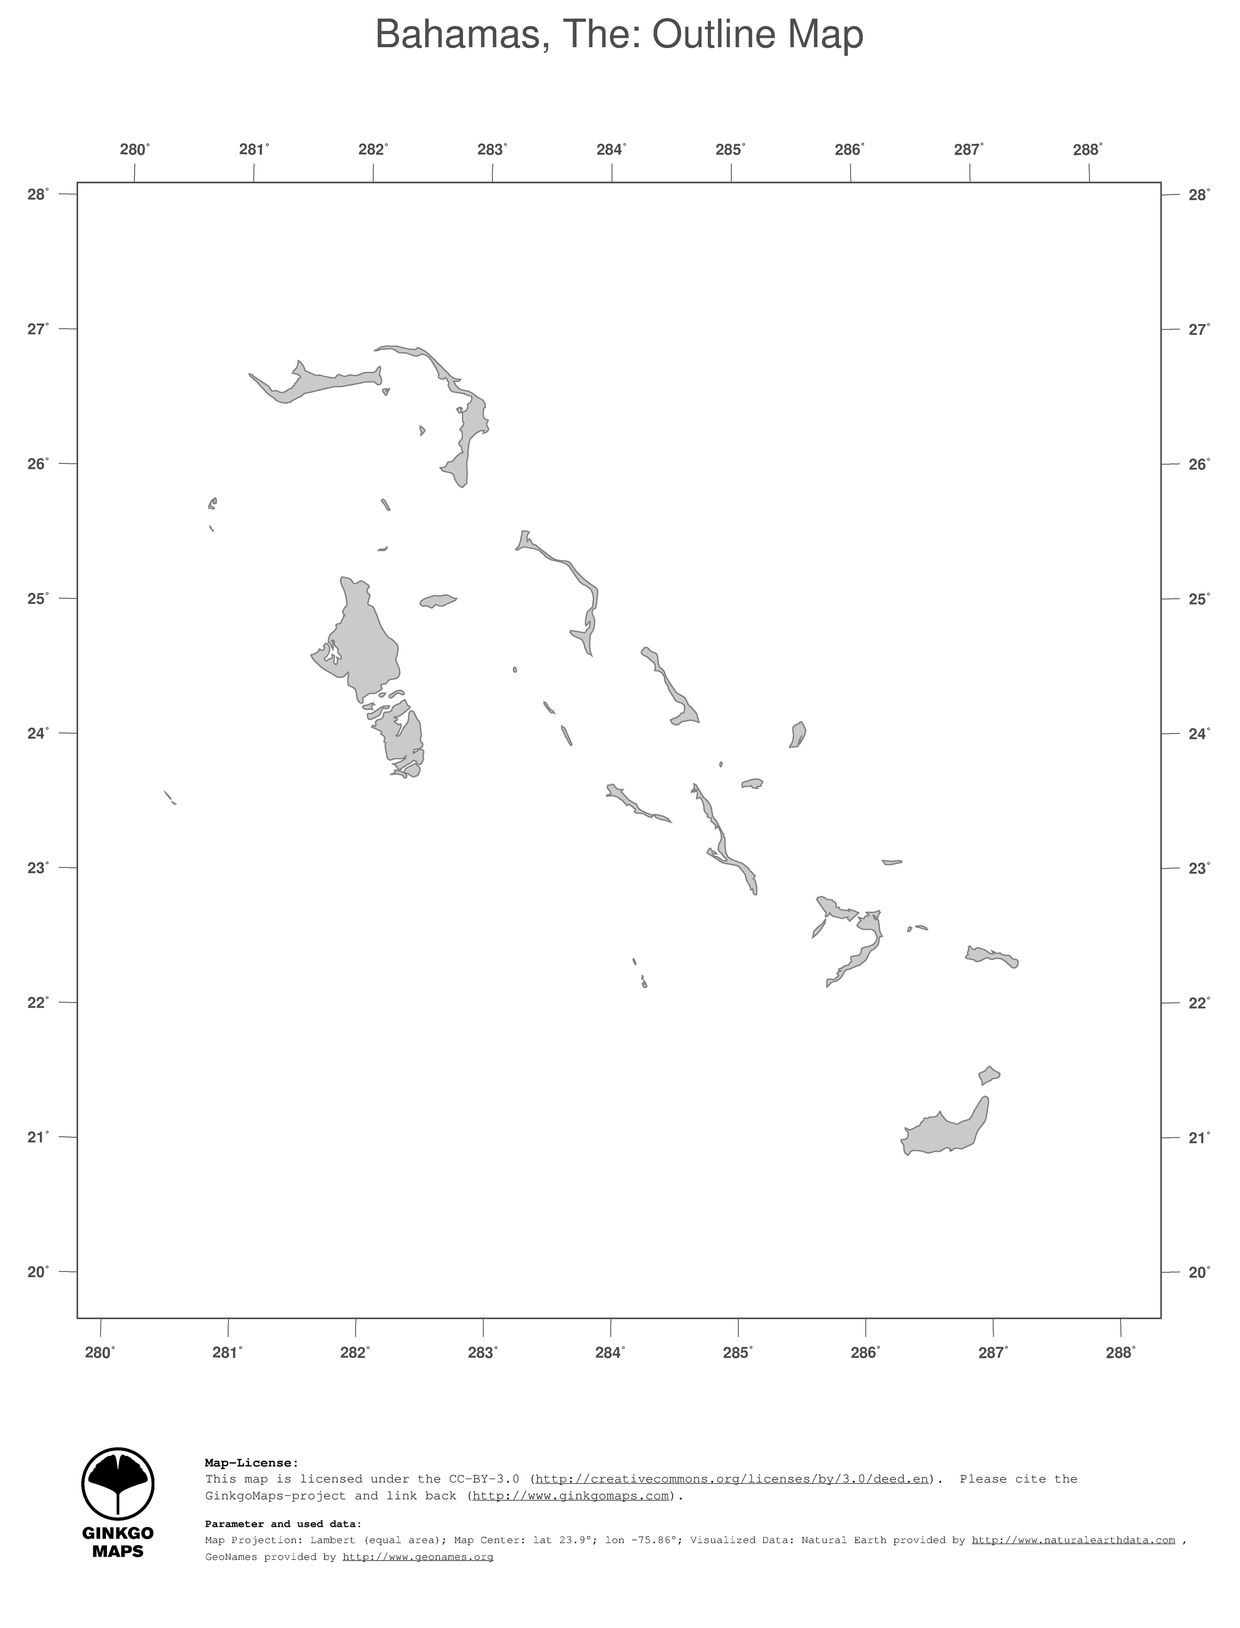 Map Bahamas The GinkgoMaps continent South America region